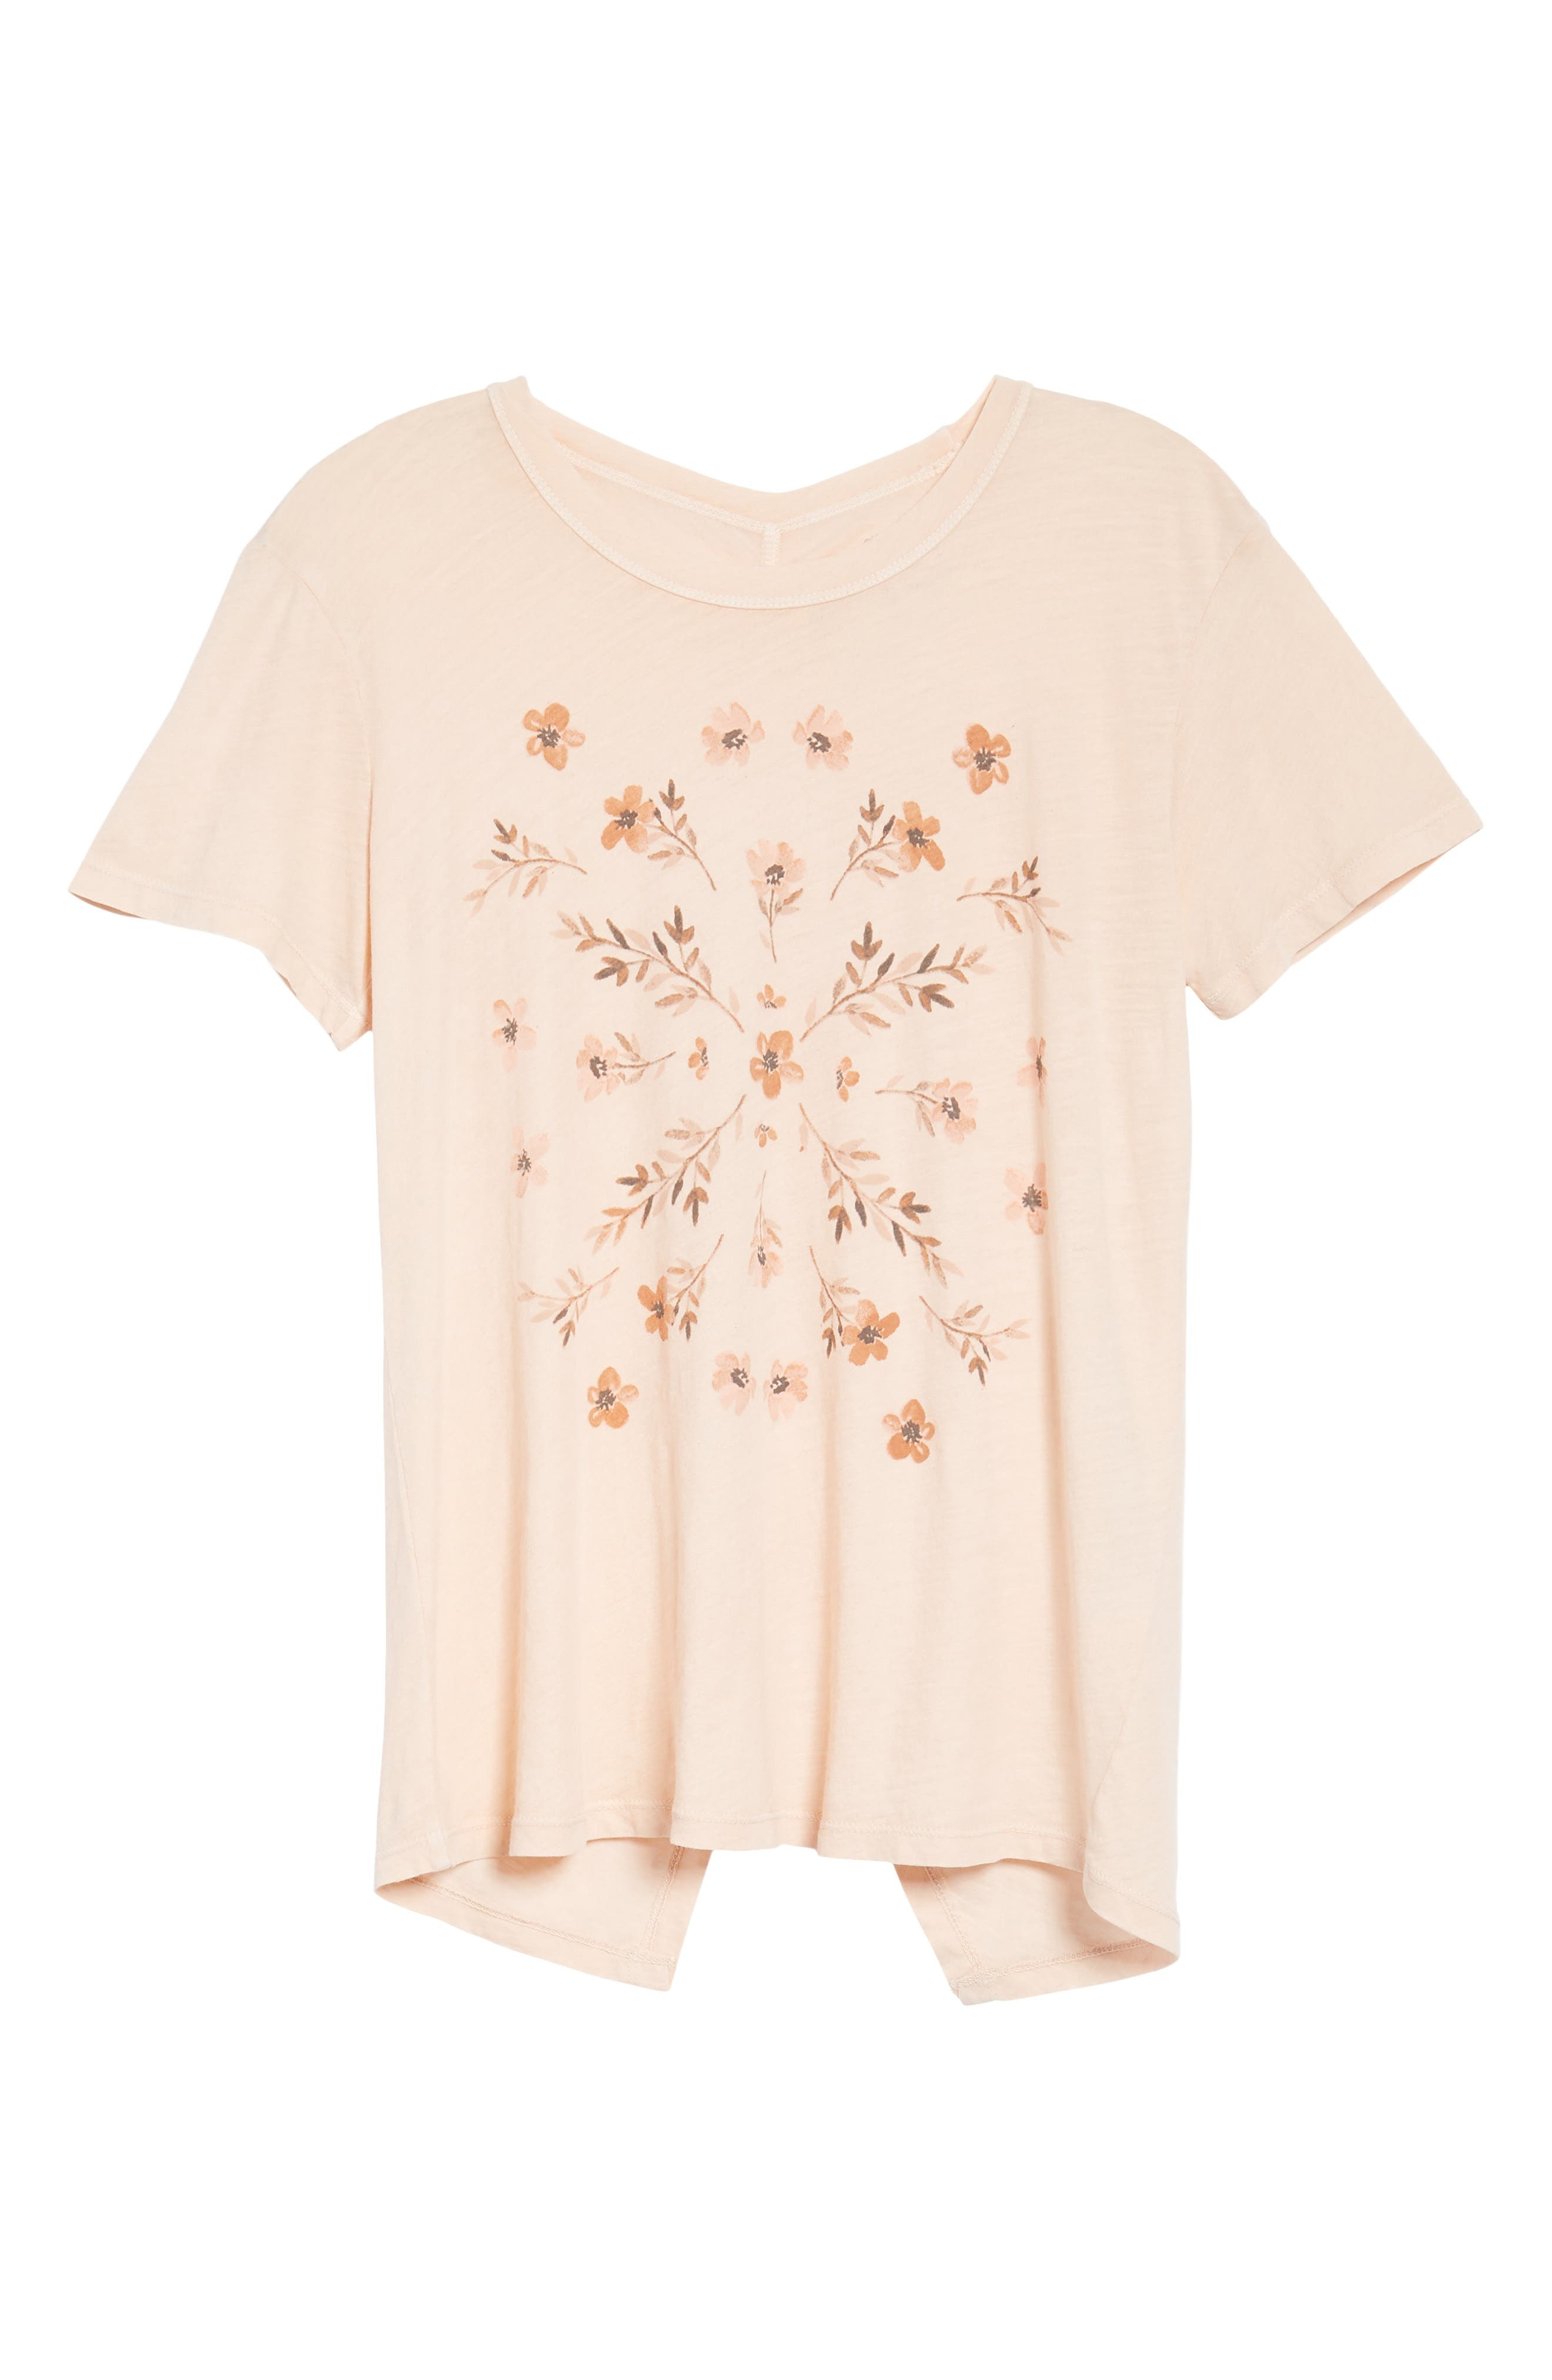 Stamp Flowers Cotton Tee,                             Alternate thumbnail 6, color,                             148